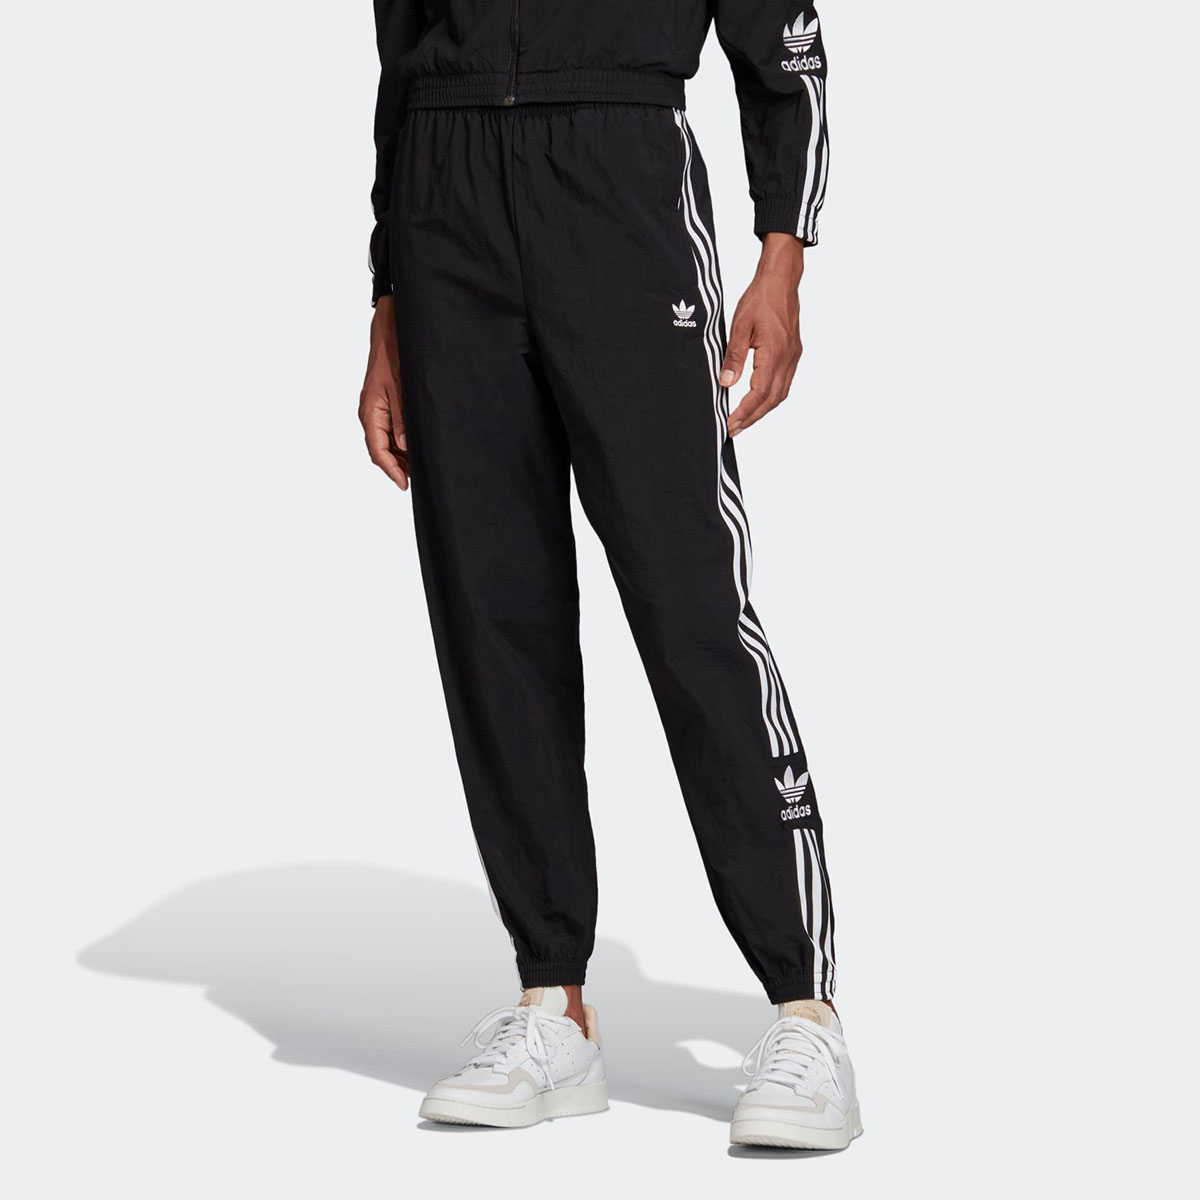 adidas pants in store